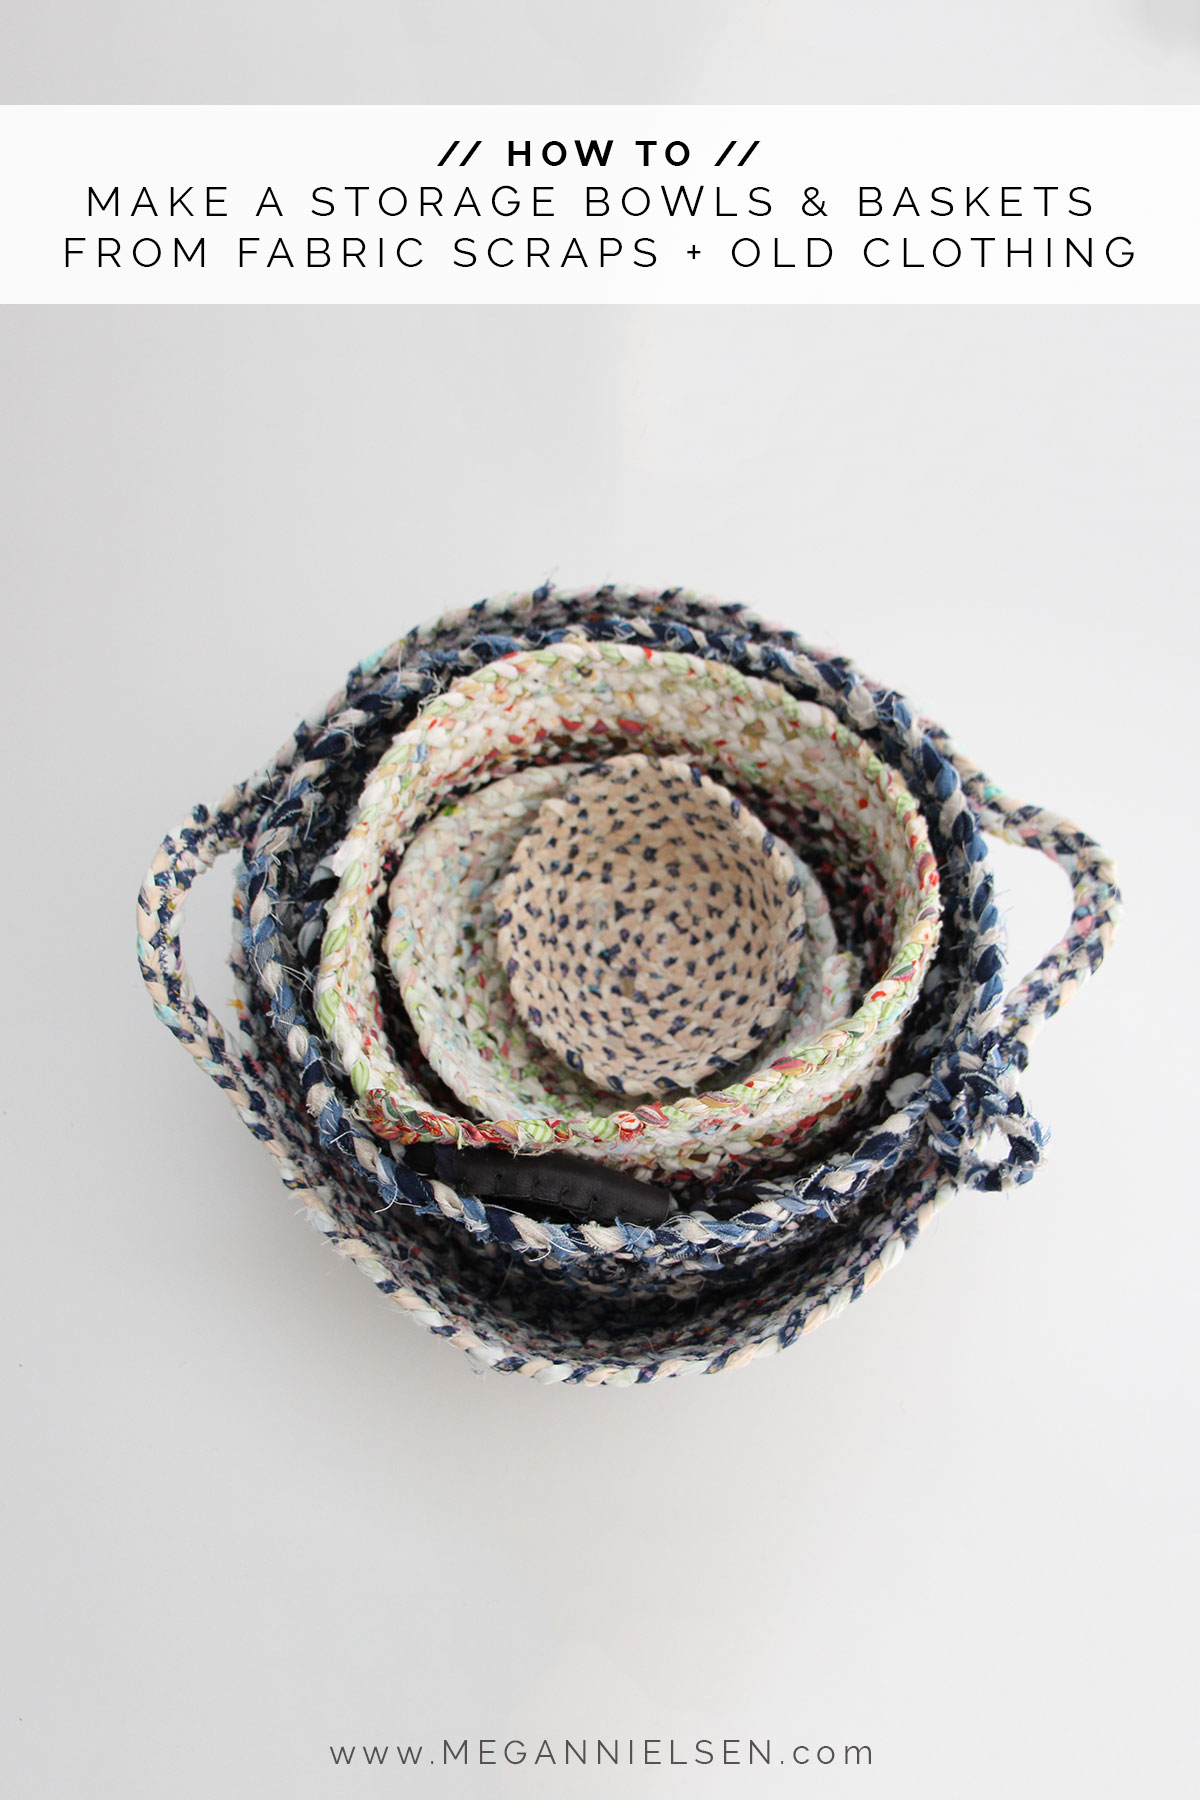 How to make beautiful storage bowls and baskets from your fabric scraps and worn out old clothing // Megan Nielsen Design Diary